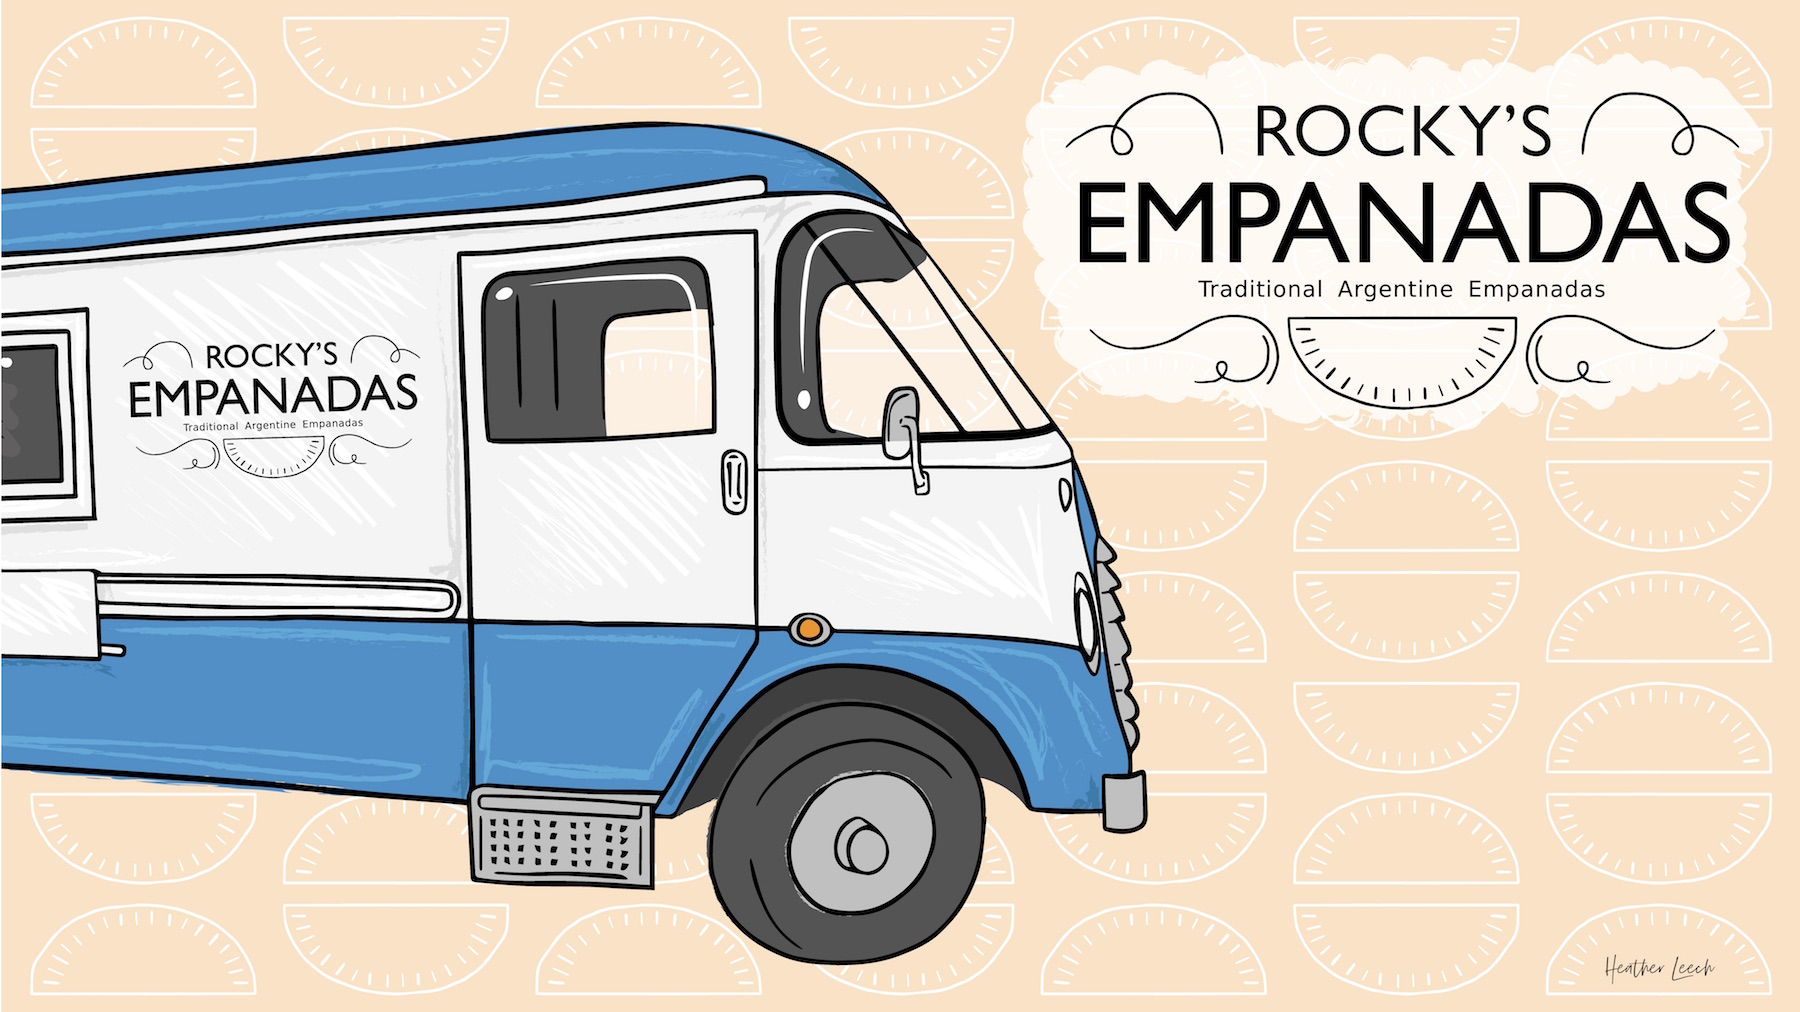 empanada business, empanada business ideas